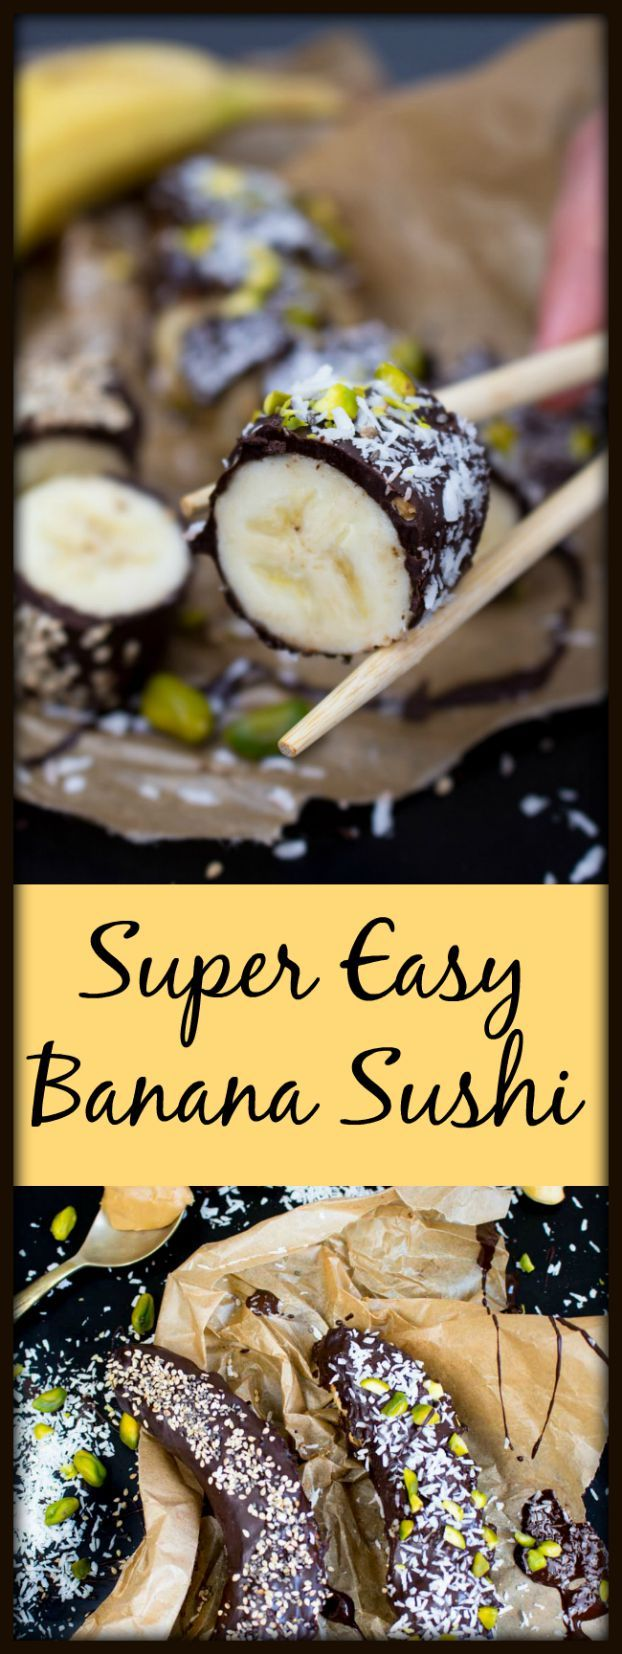 Super easy banana sushi with chocolate, pistachios, coconut flakes, sesame and chia seeds.